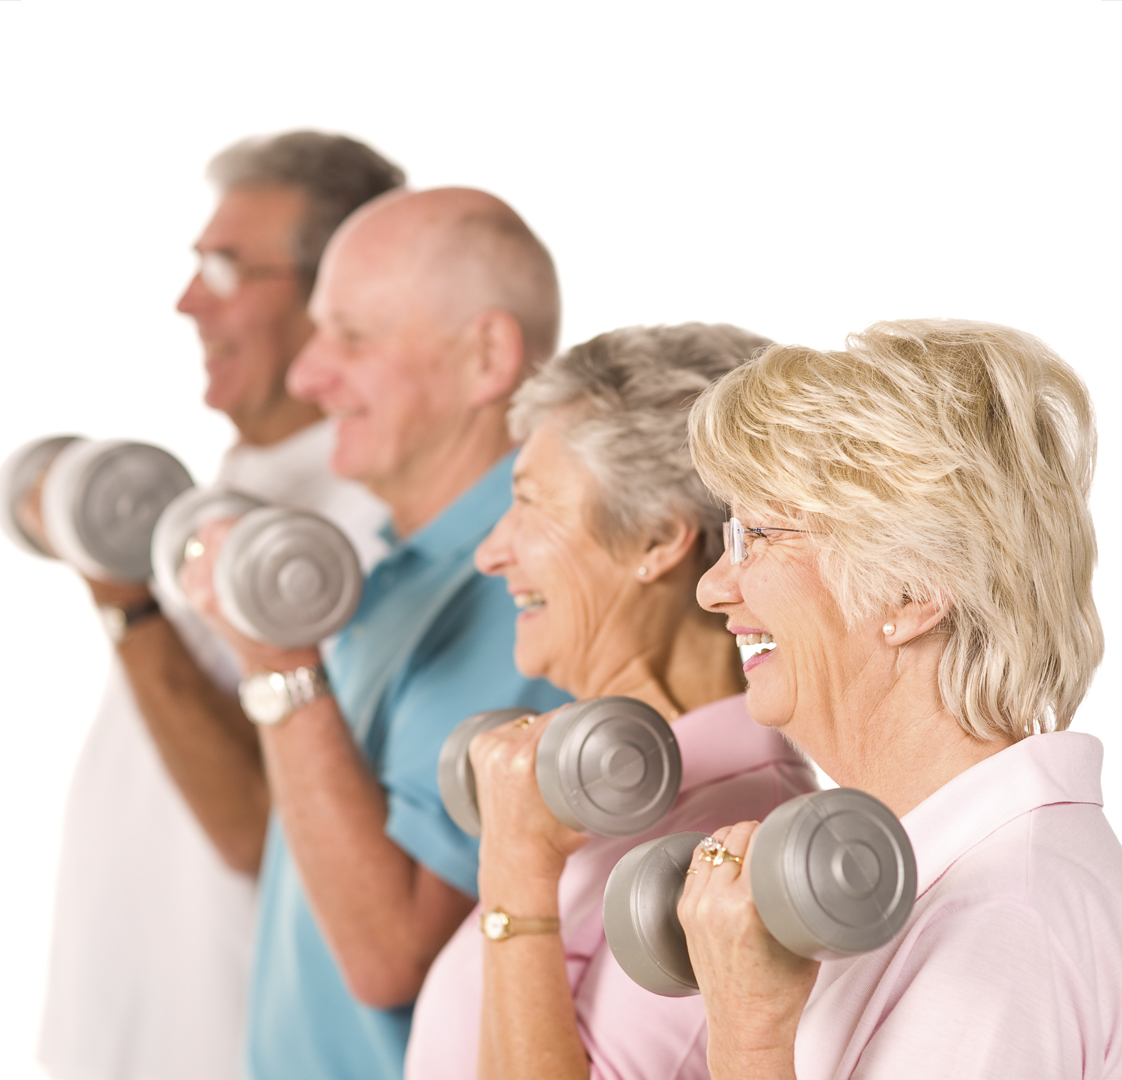 conoces la sarcopenia